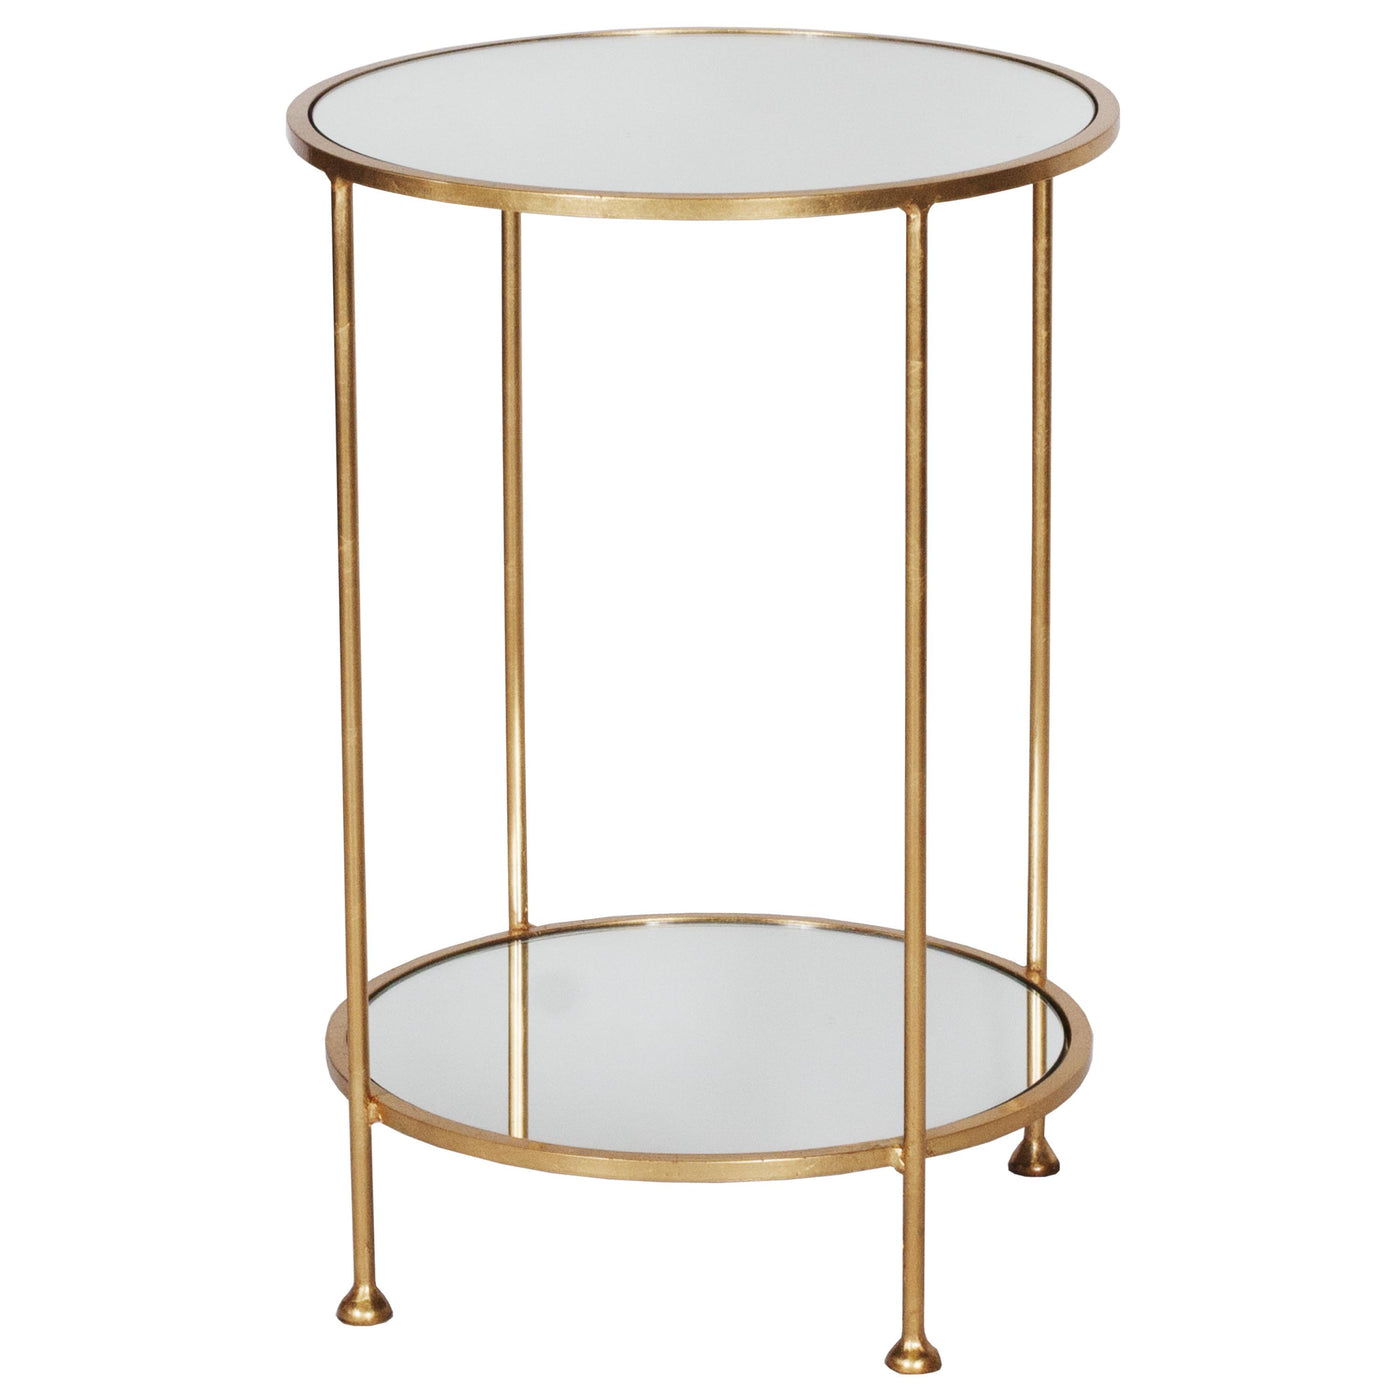 Worlds Away CHICO side table Gold Leaf front view